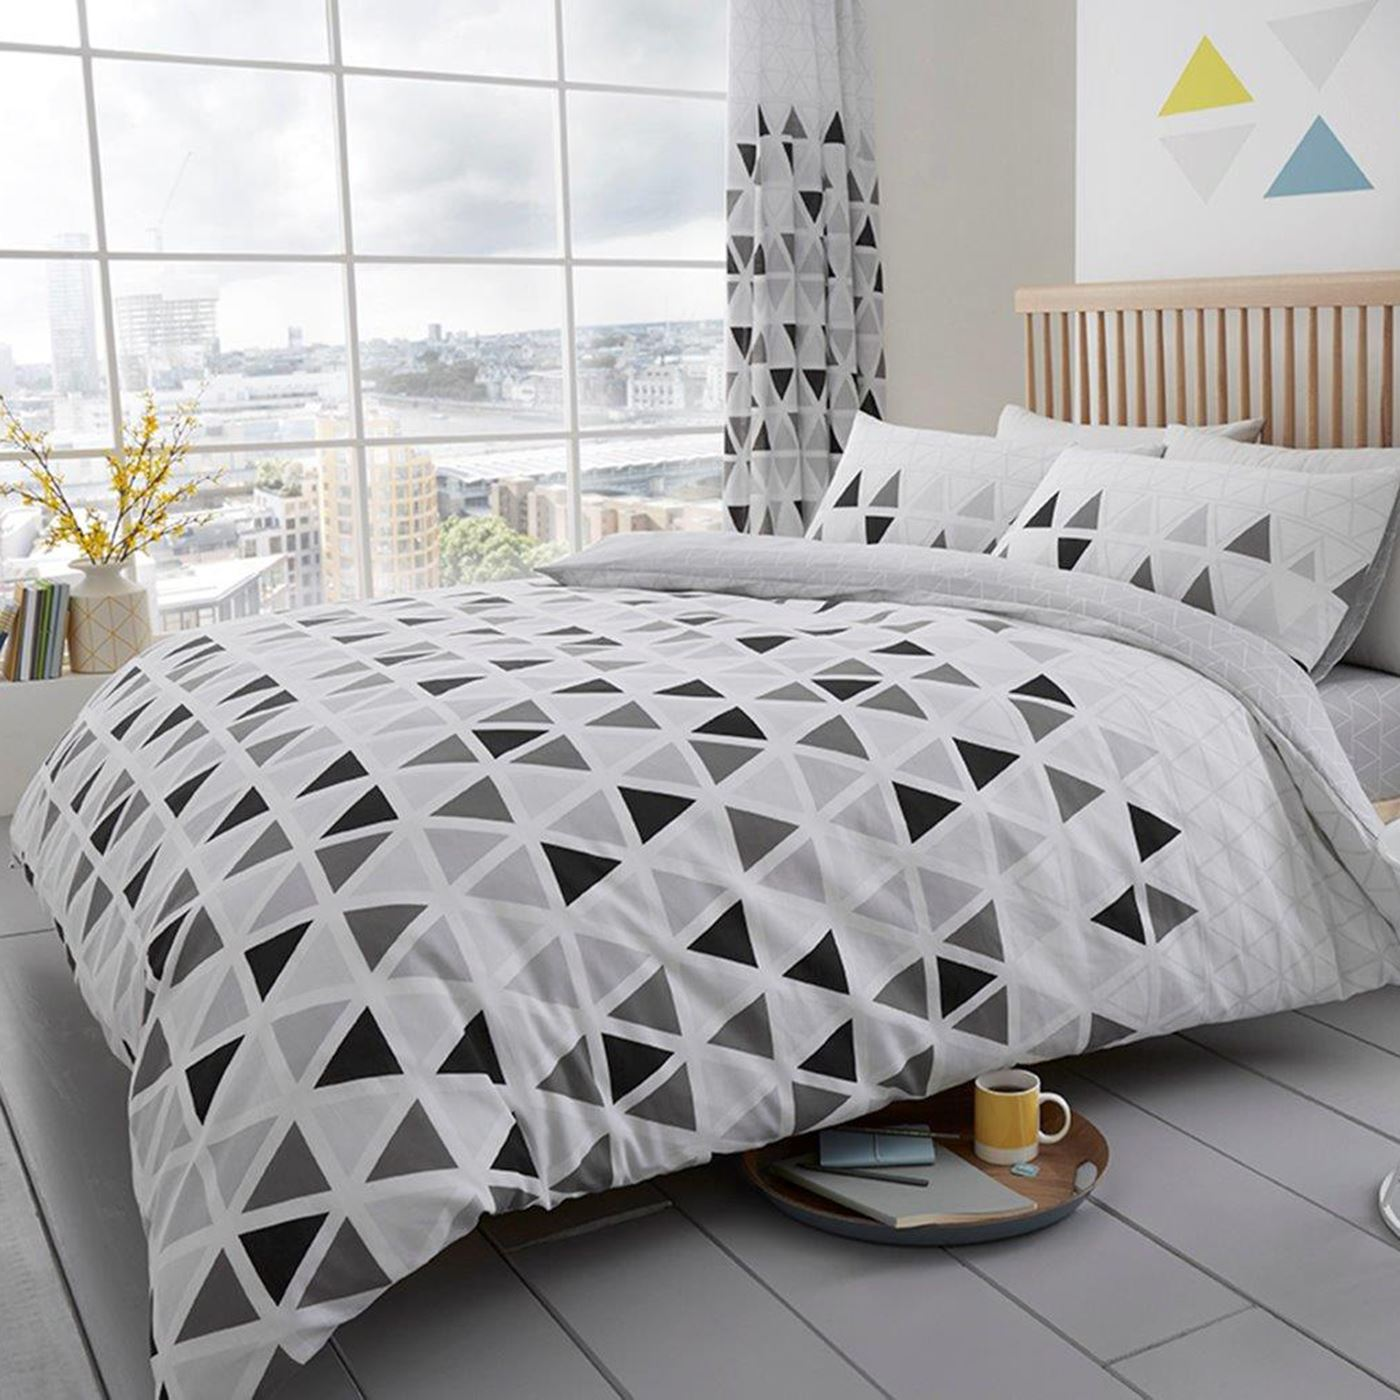 geo triangle duvet cover set bedding teal pink grey single double king size ebay. Black Bedroom Furniture Sets. Home Design Ideas